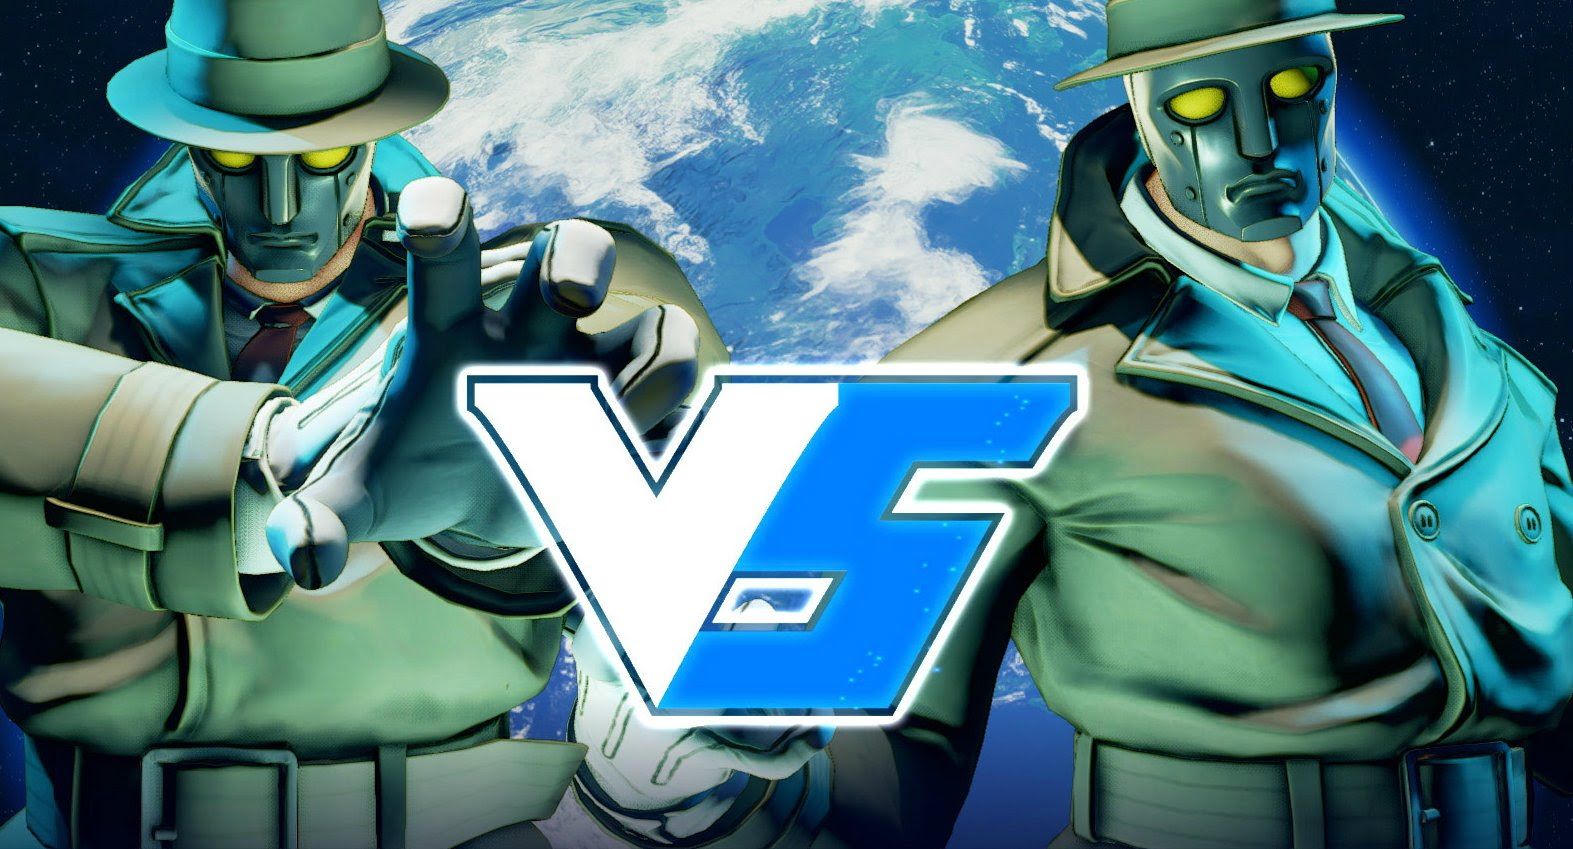 Rumor: Capcom is sticking to their promise of one SKU for Street Fighter V with a free 'Super' update screenshot